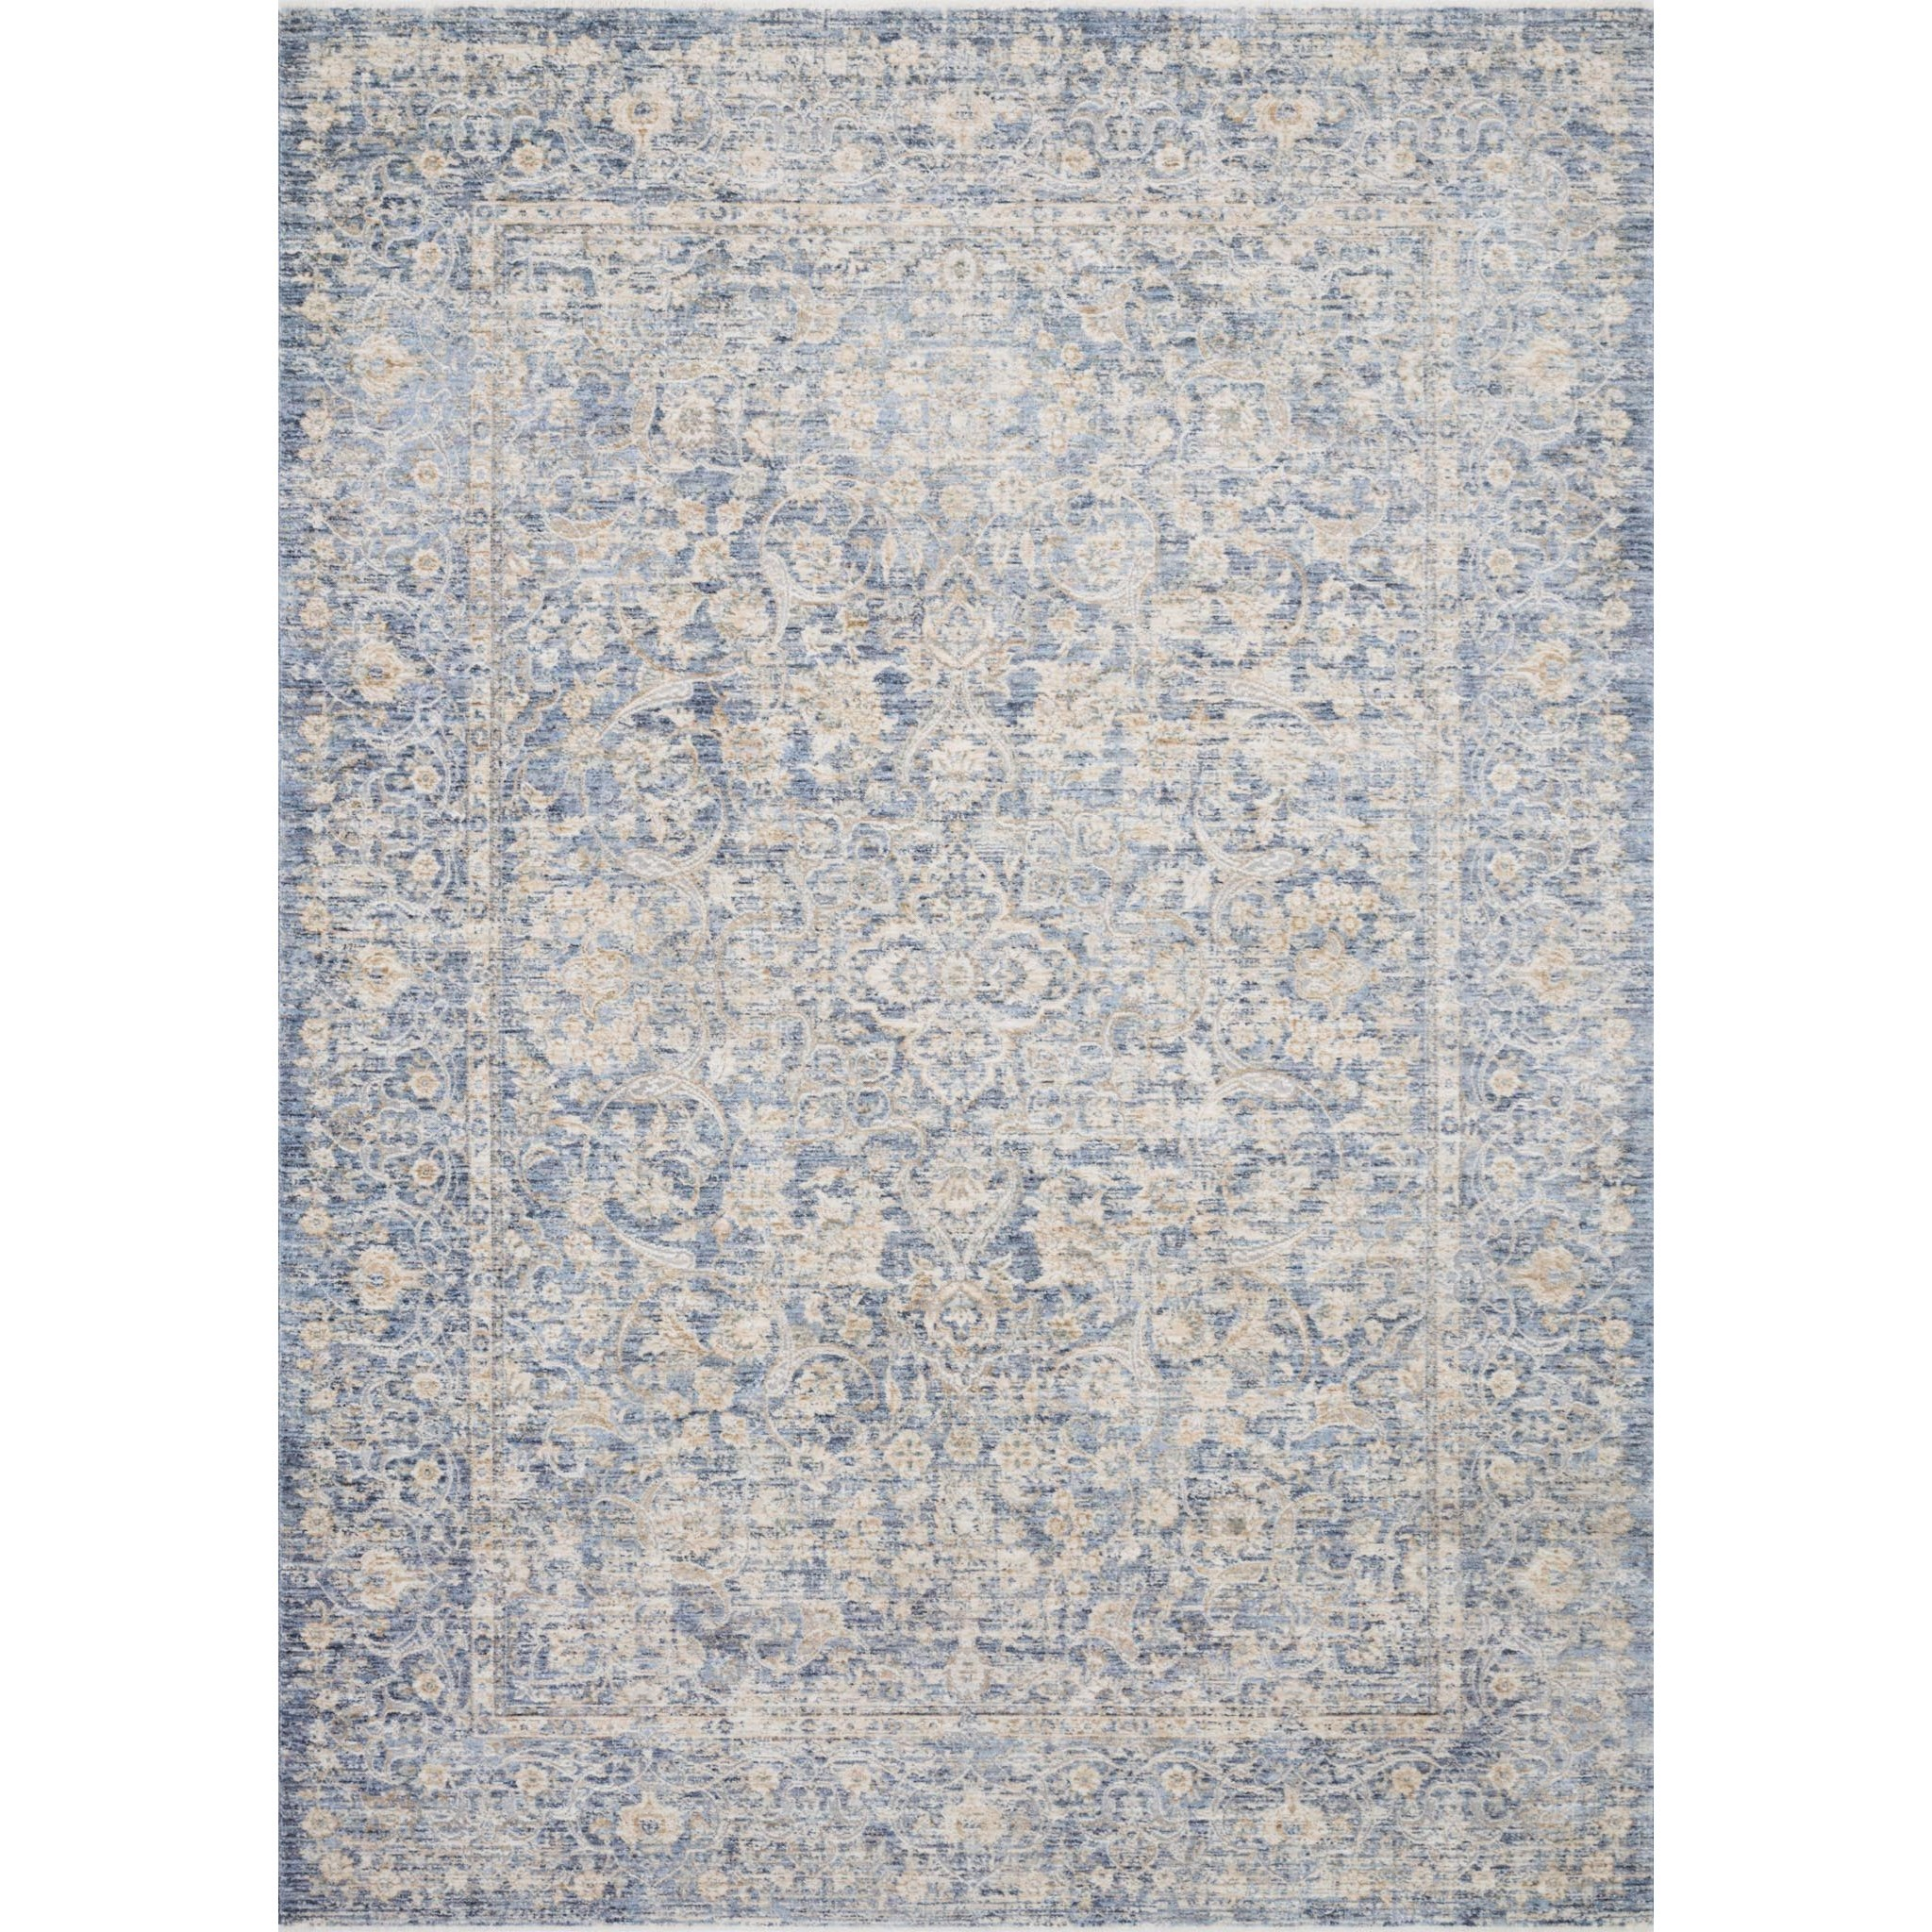 "Pandora 11'-6"" X 15'-6"" Rug by Loloi Rugs at Sprintz Furniture"